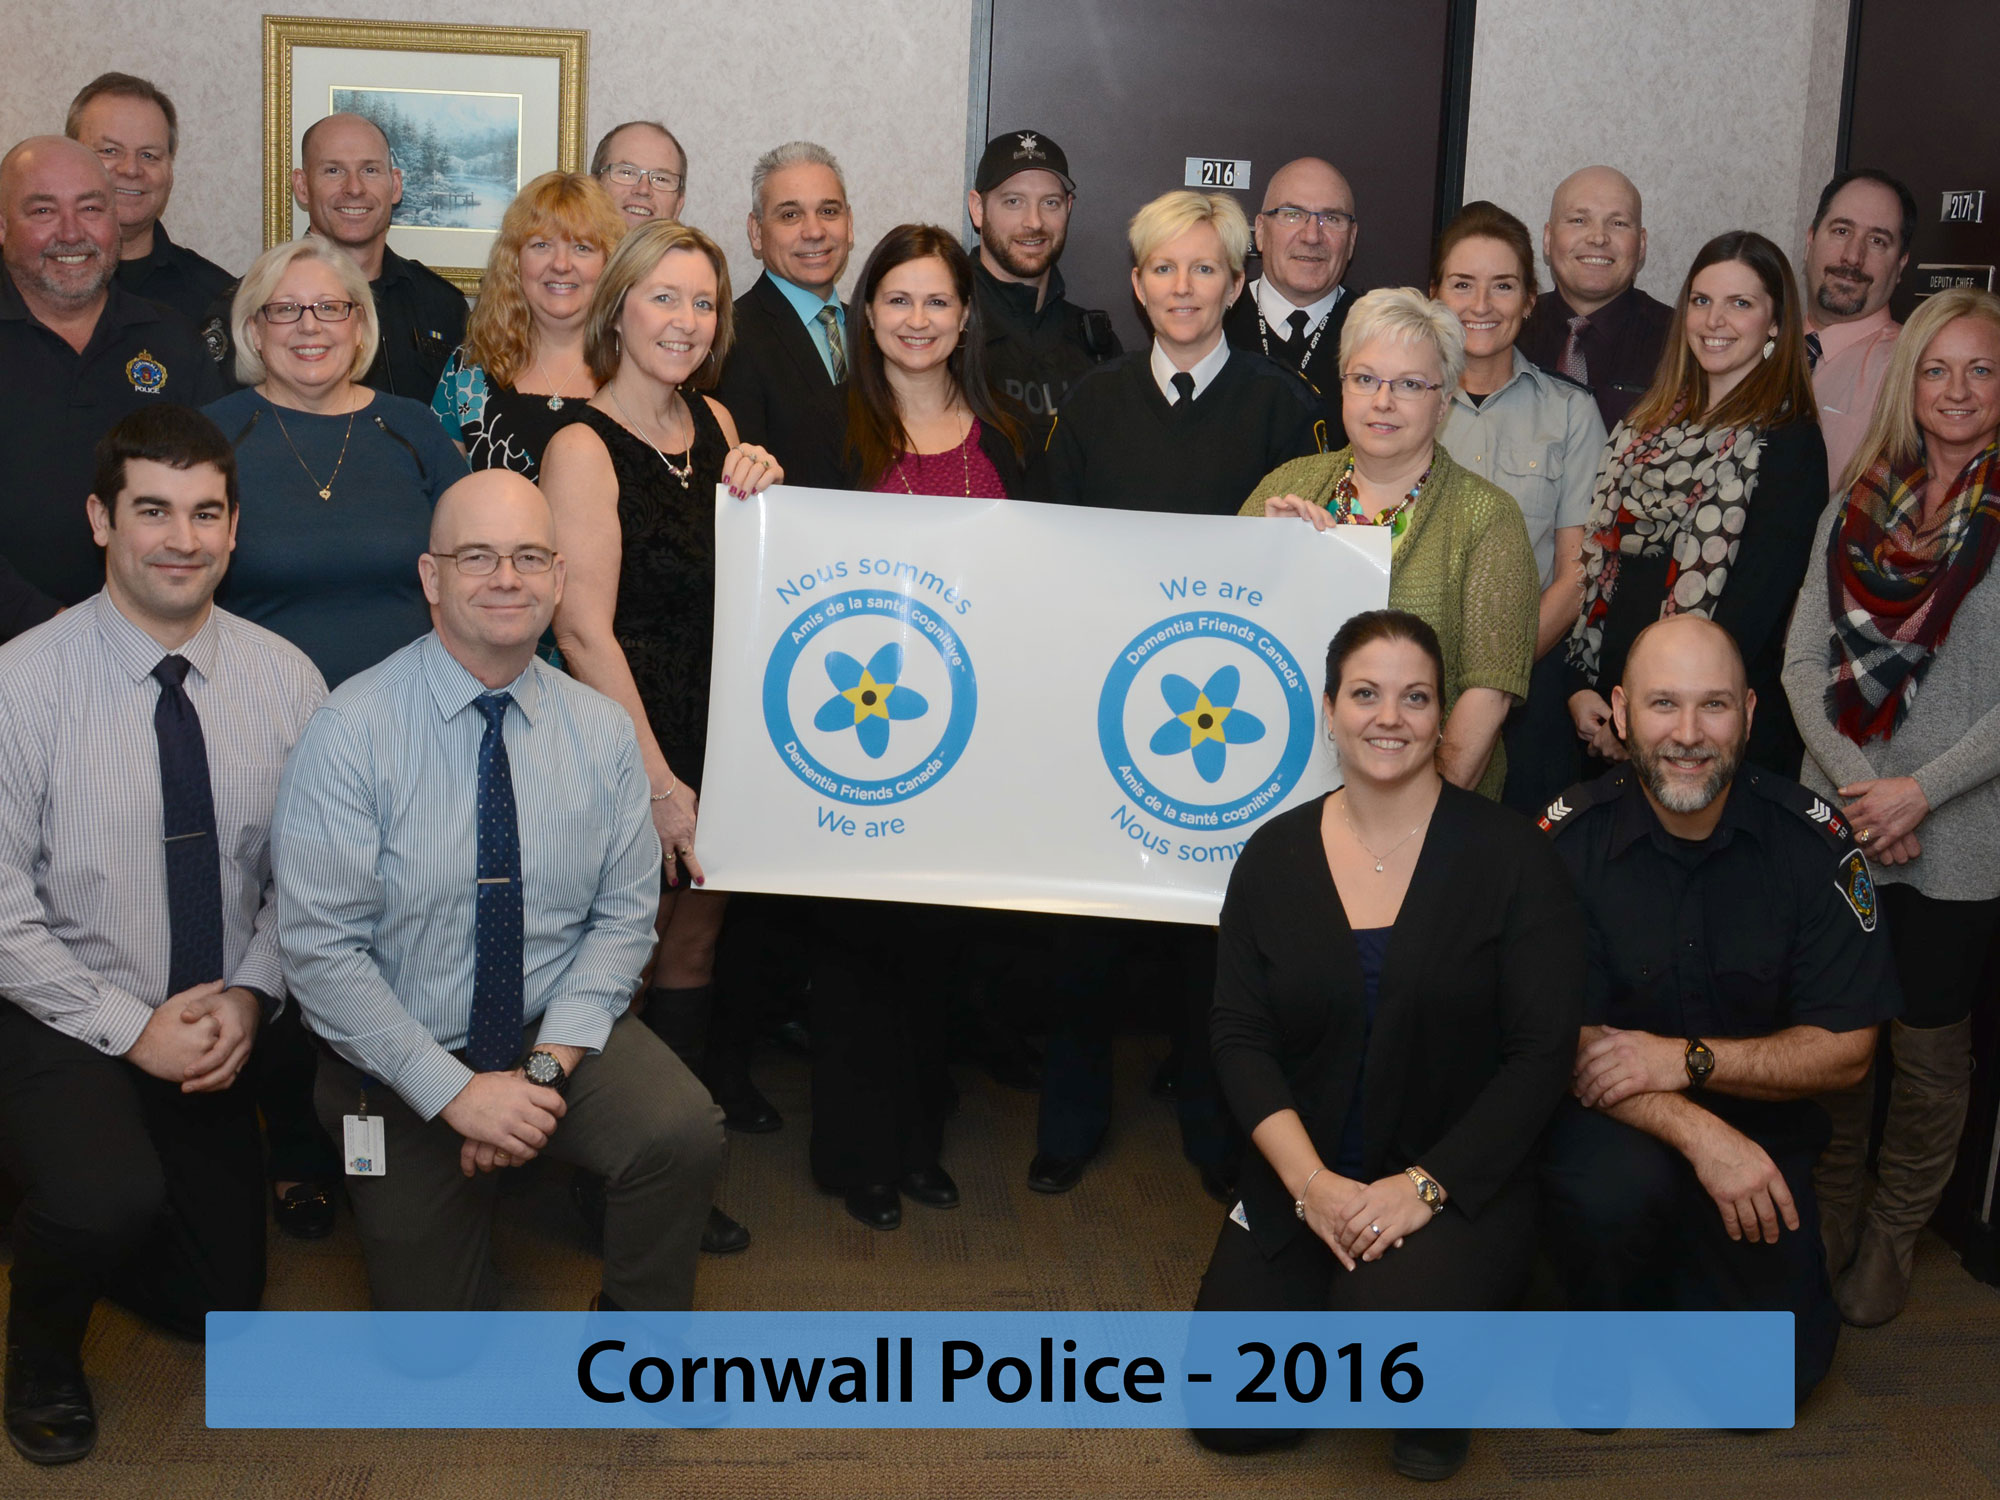 Cornwall Police are Dementia Friends